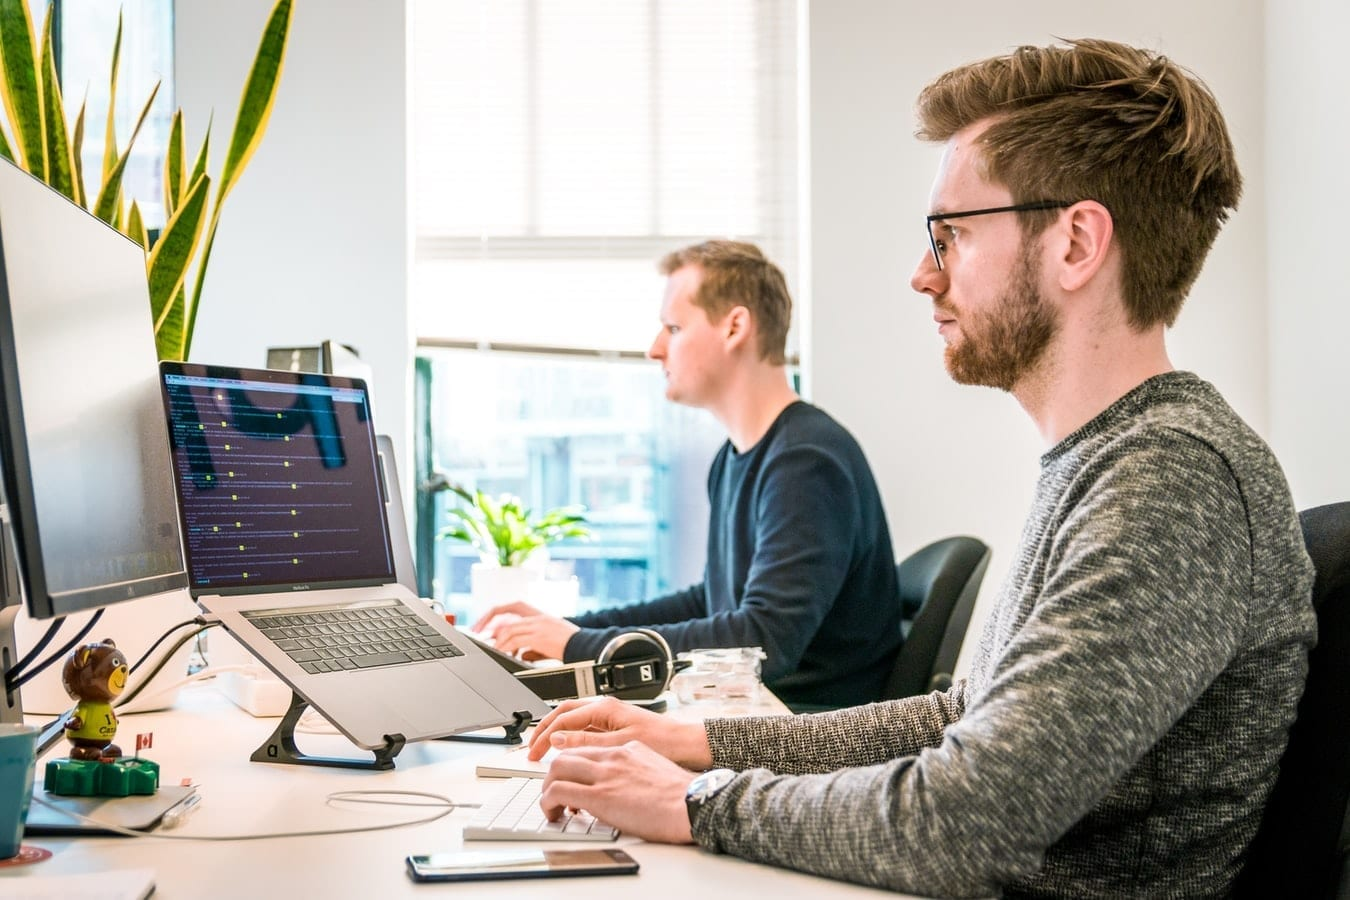 Two developers working in office on laptops